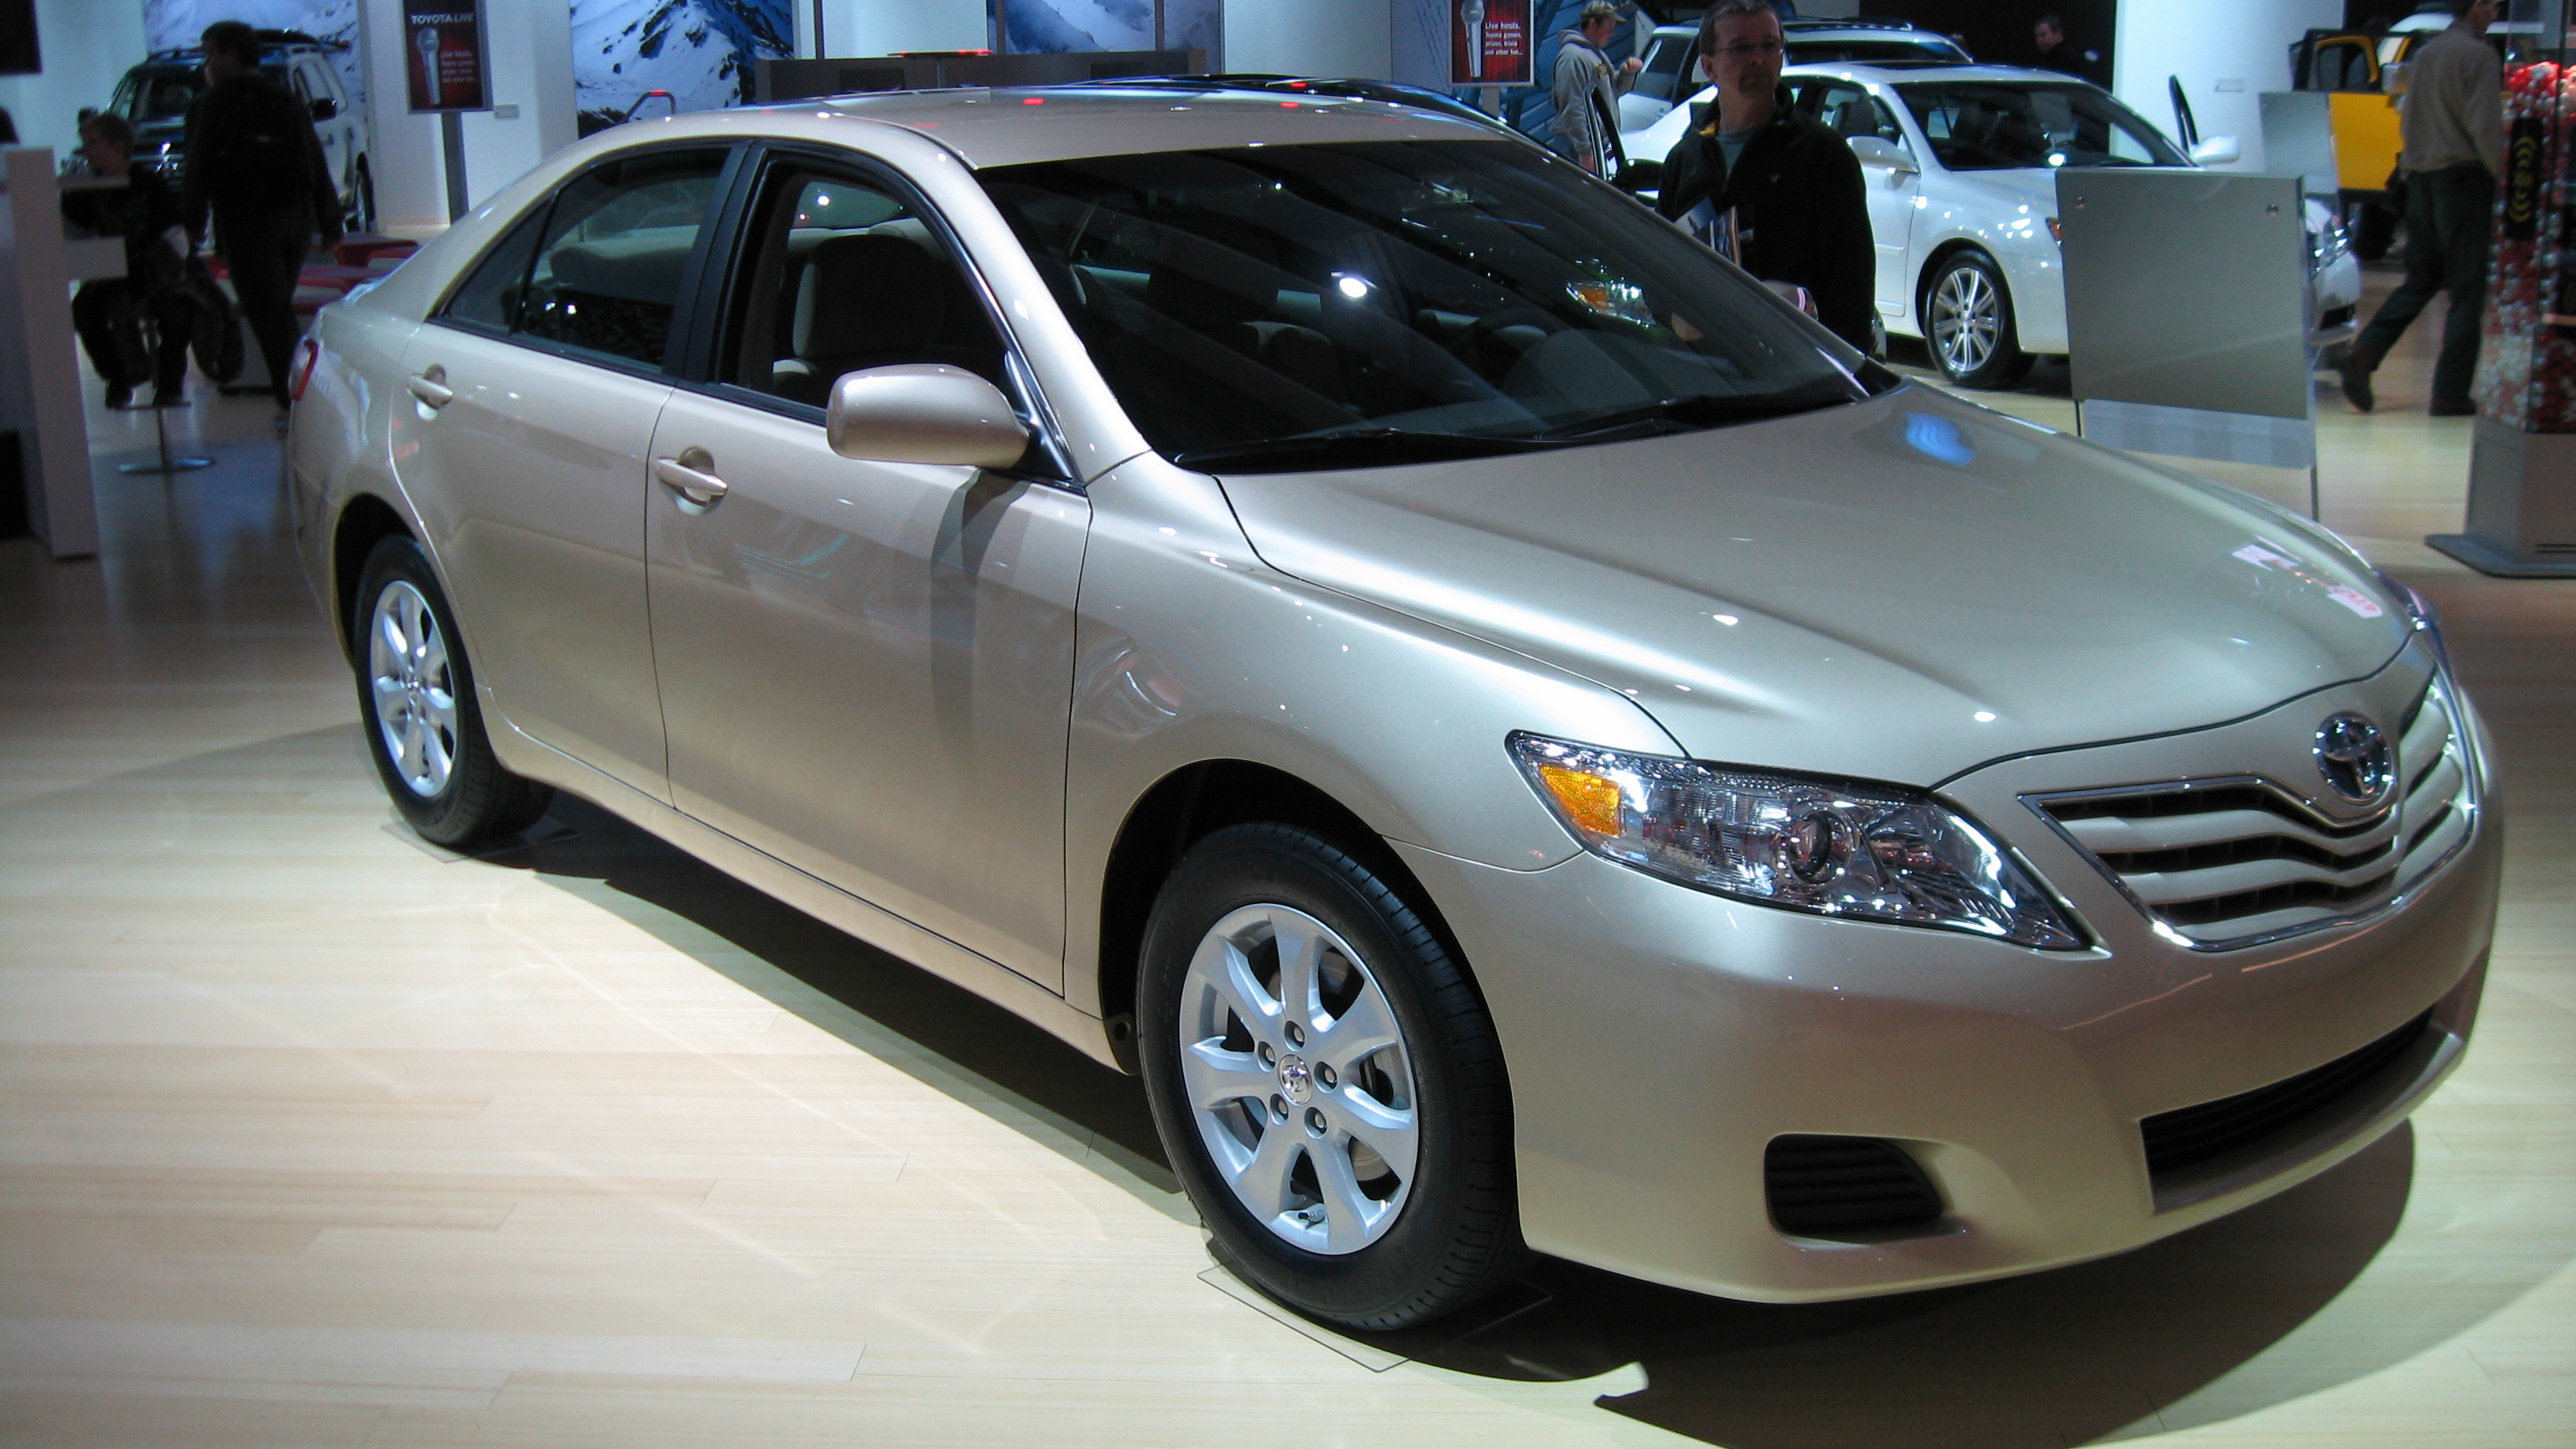 http://upload.wikimedia.org/wikipedia/commons/0/00/2010_Toyota_Camry_LE_(2009-01-18).jpg